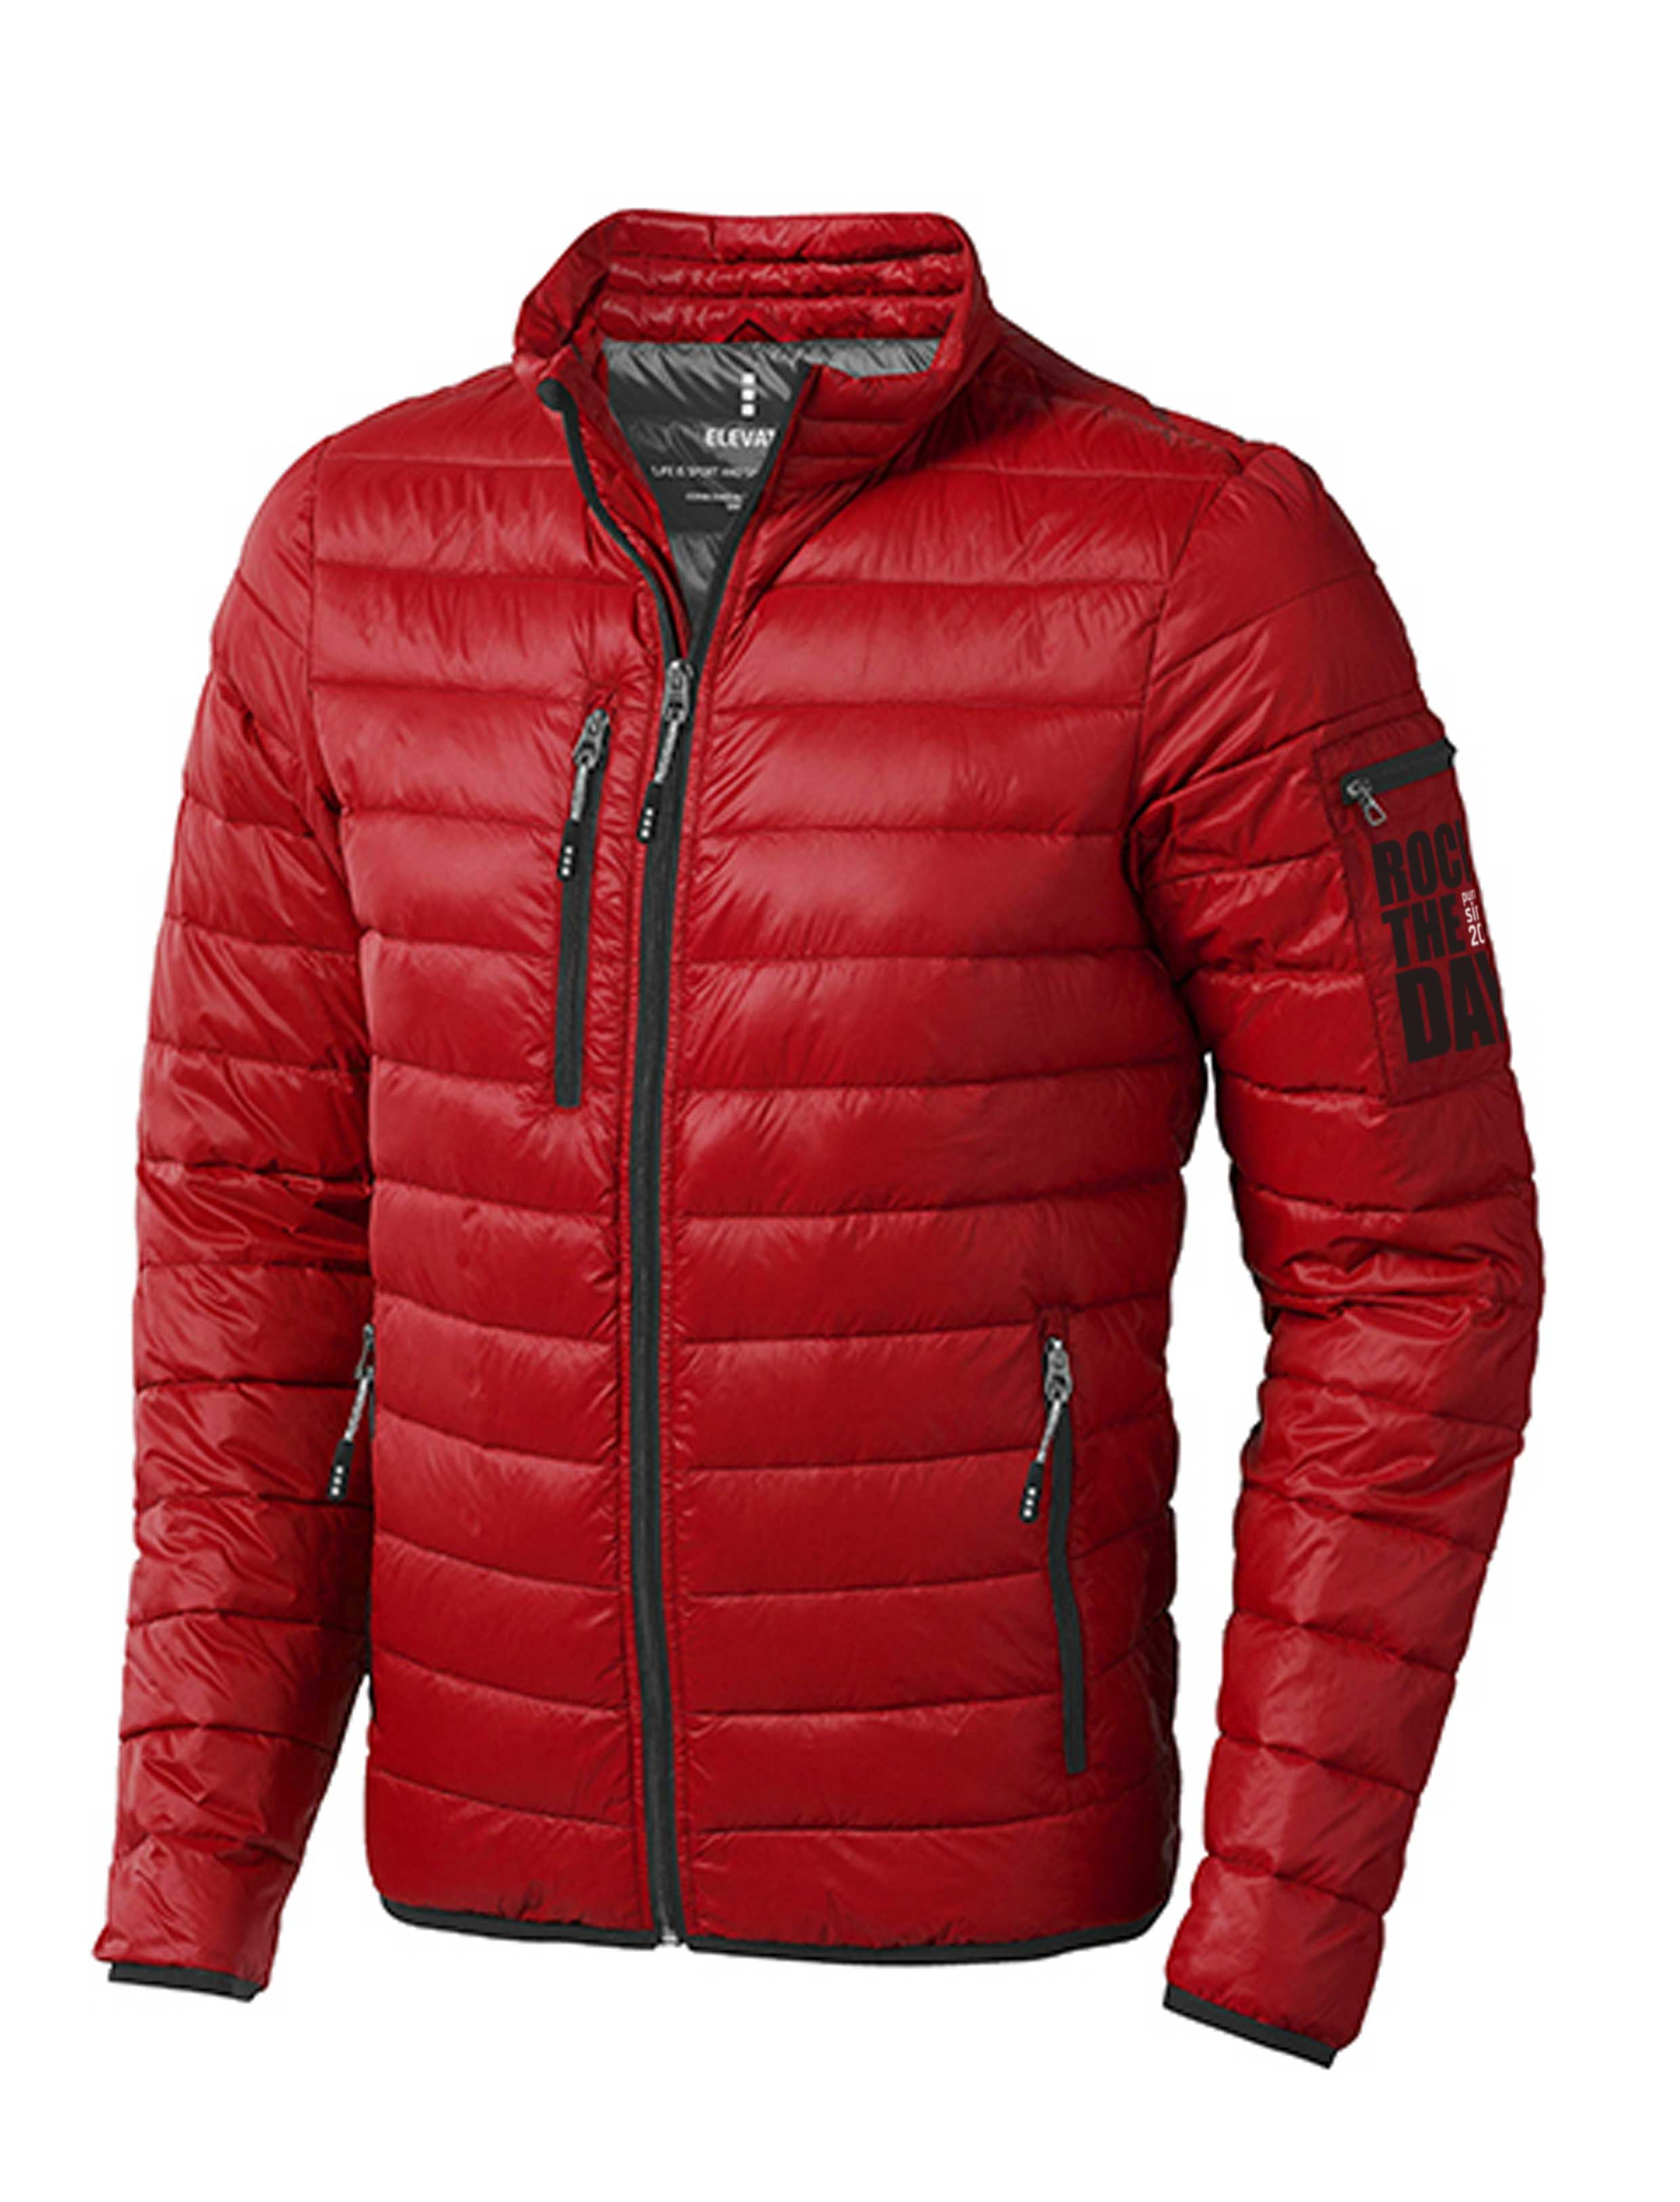 detailing 50b7b bf905 Winddichte leichte Daunenjacke ROCK THE DAY in rot für ...